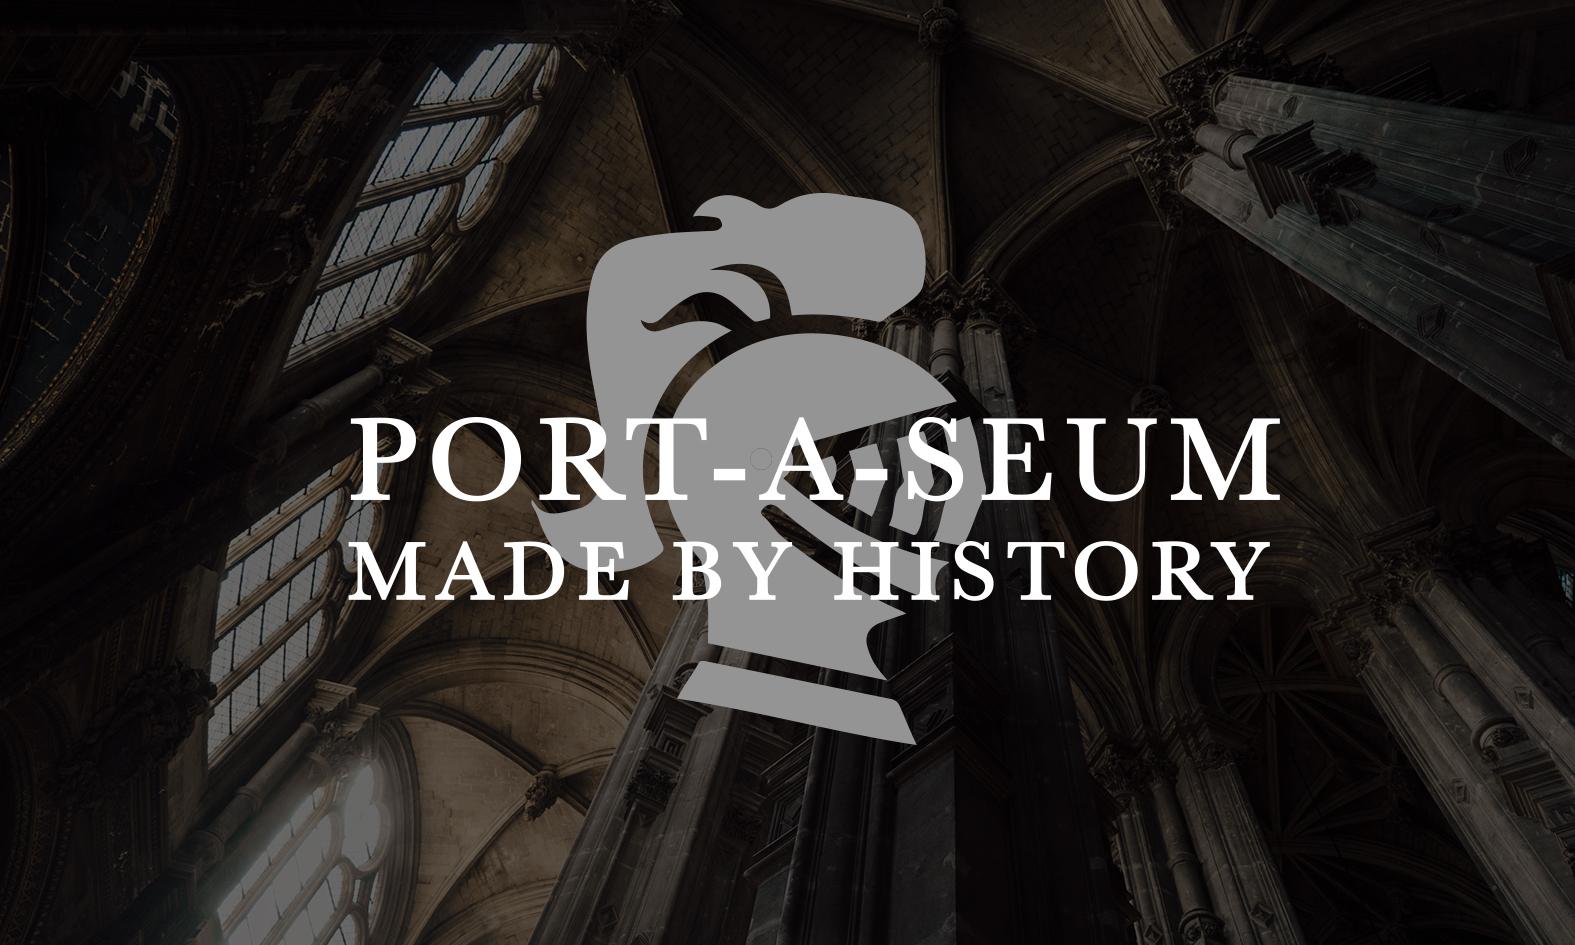 Port-a-seum: Made by history